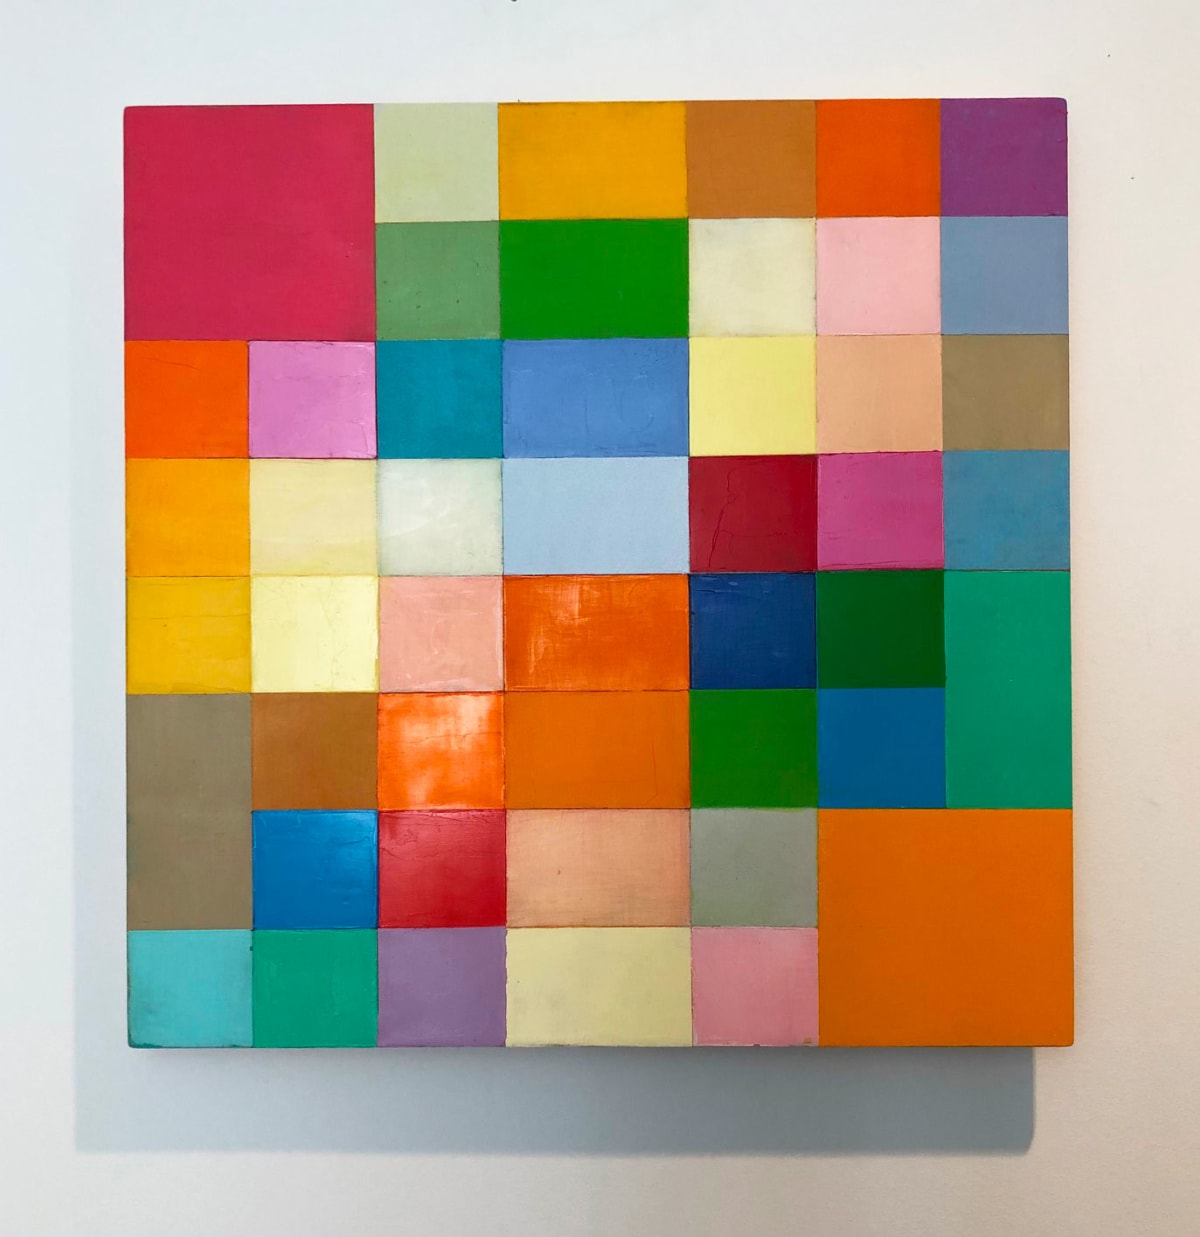 Georges MEURANT, Untitled #7, 2011-2017